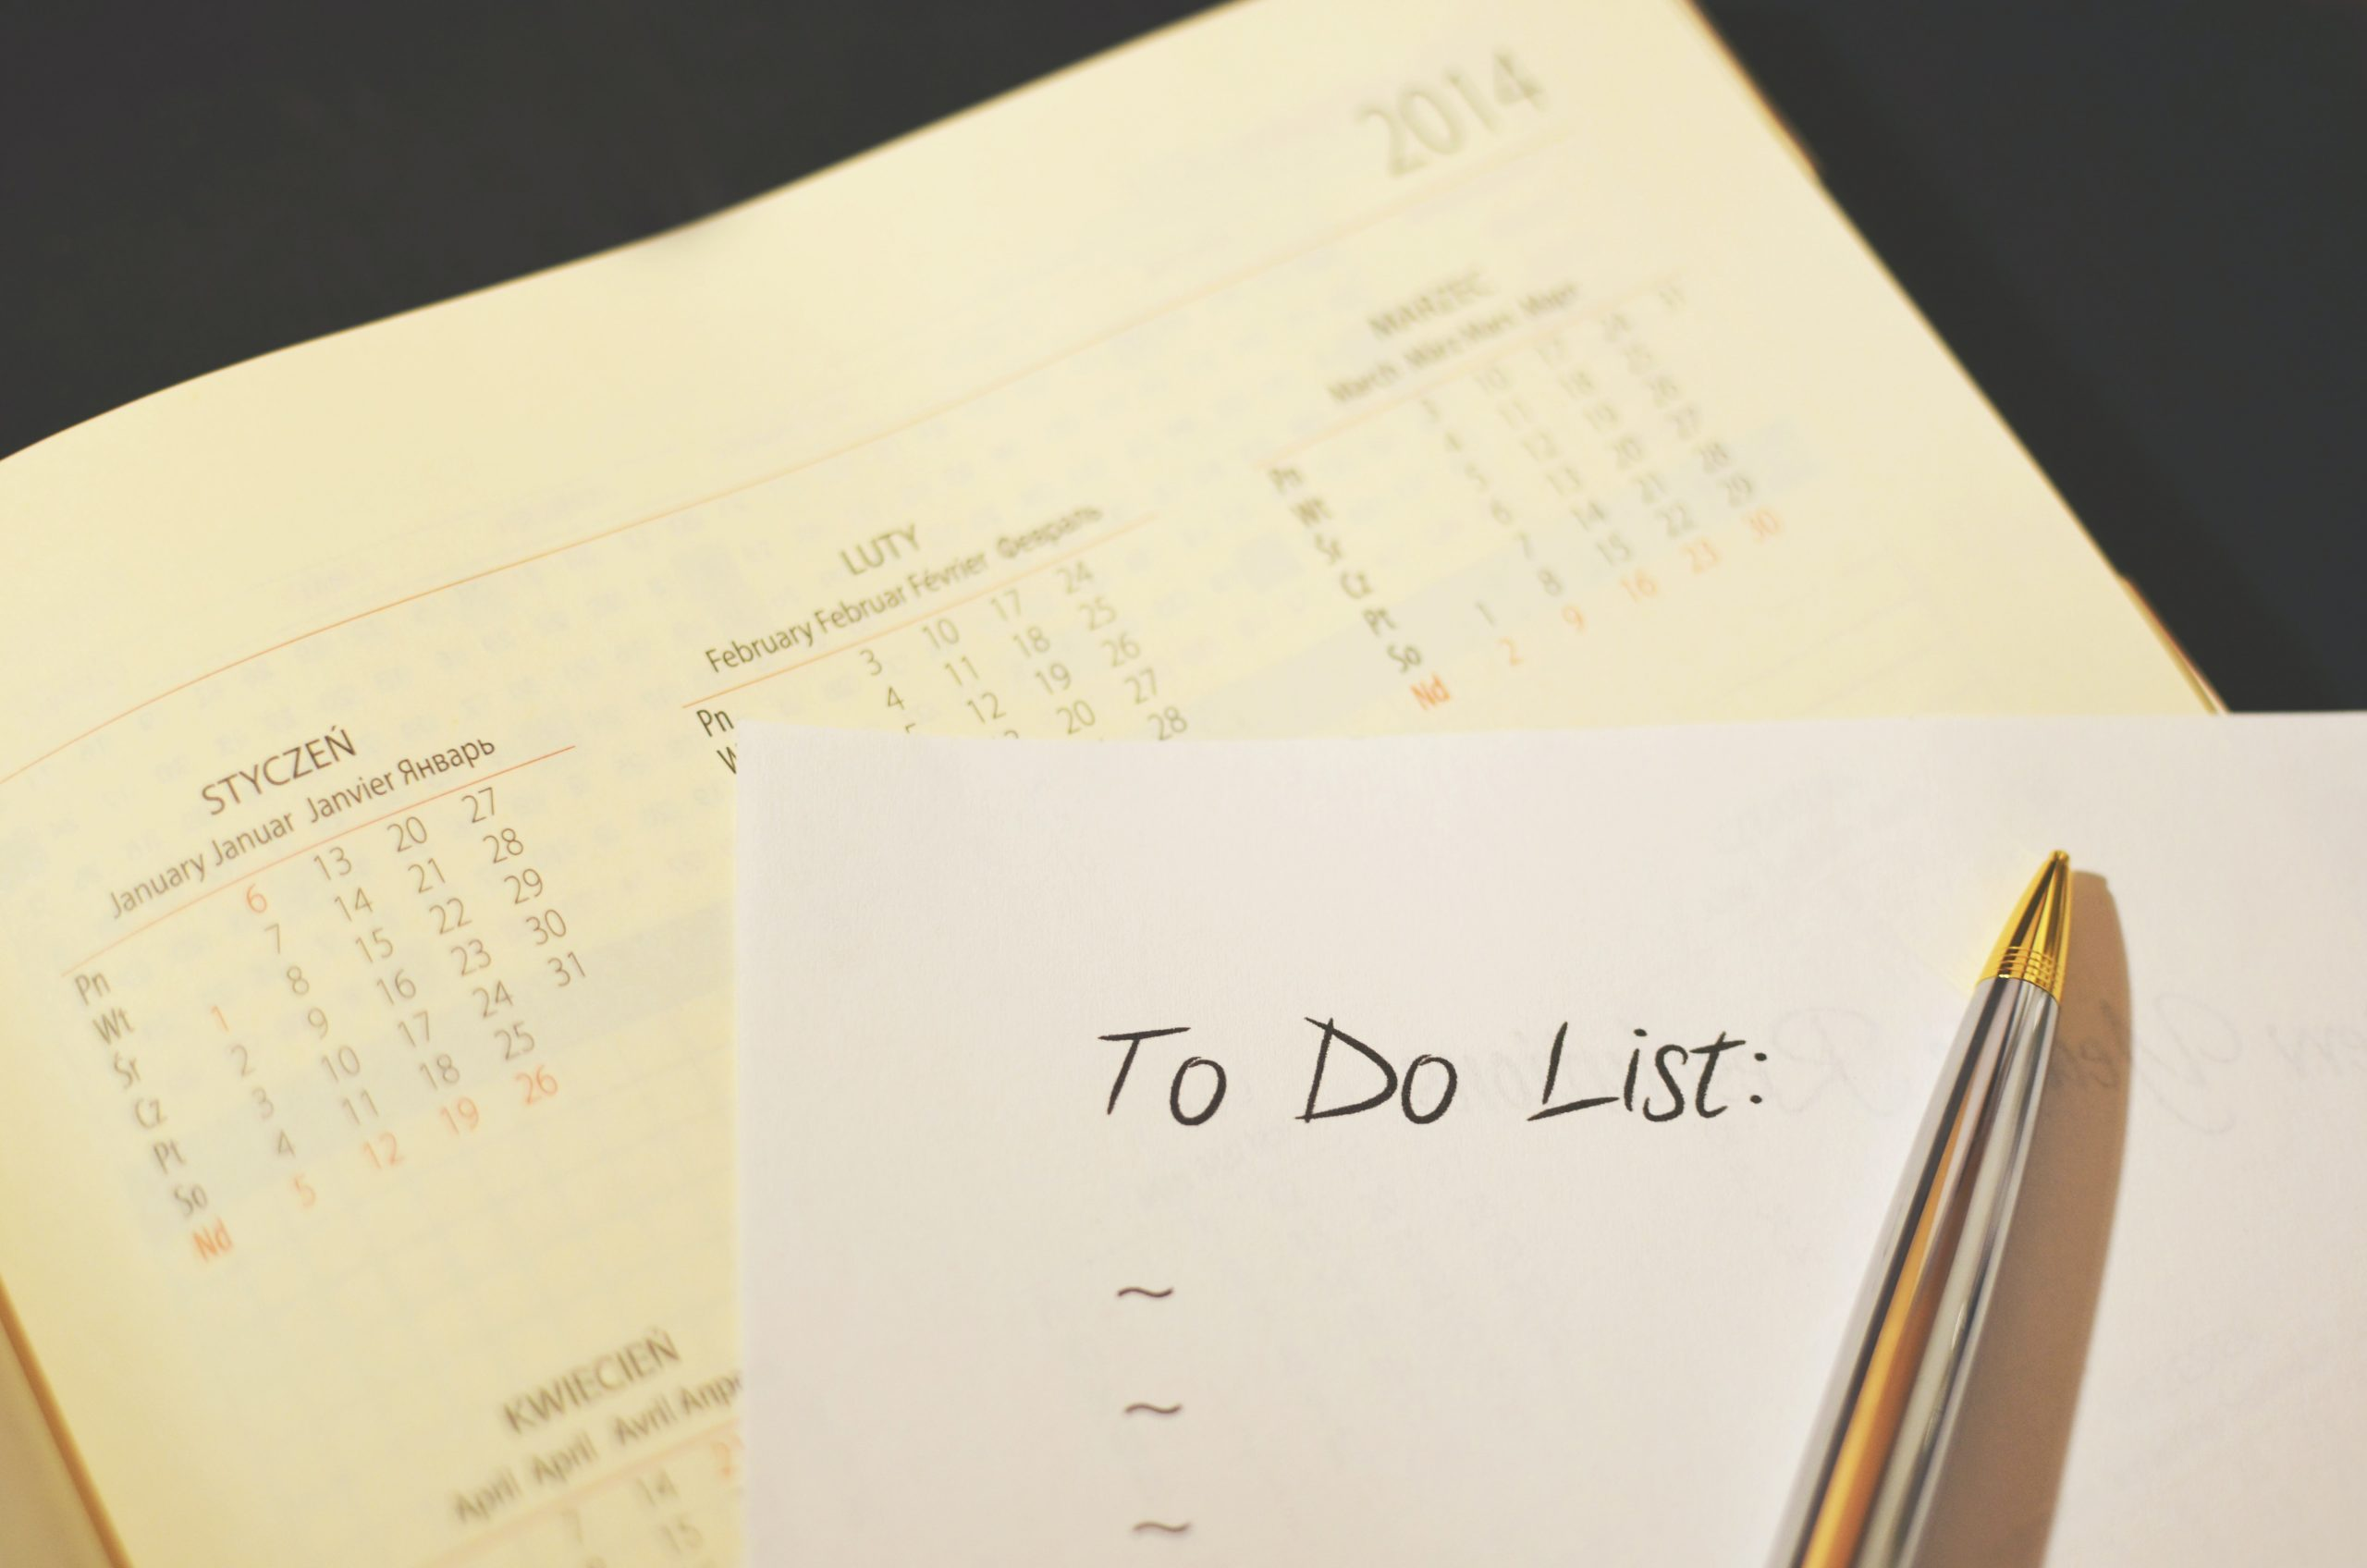 a to do list written on paper